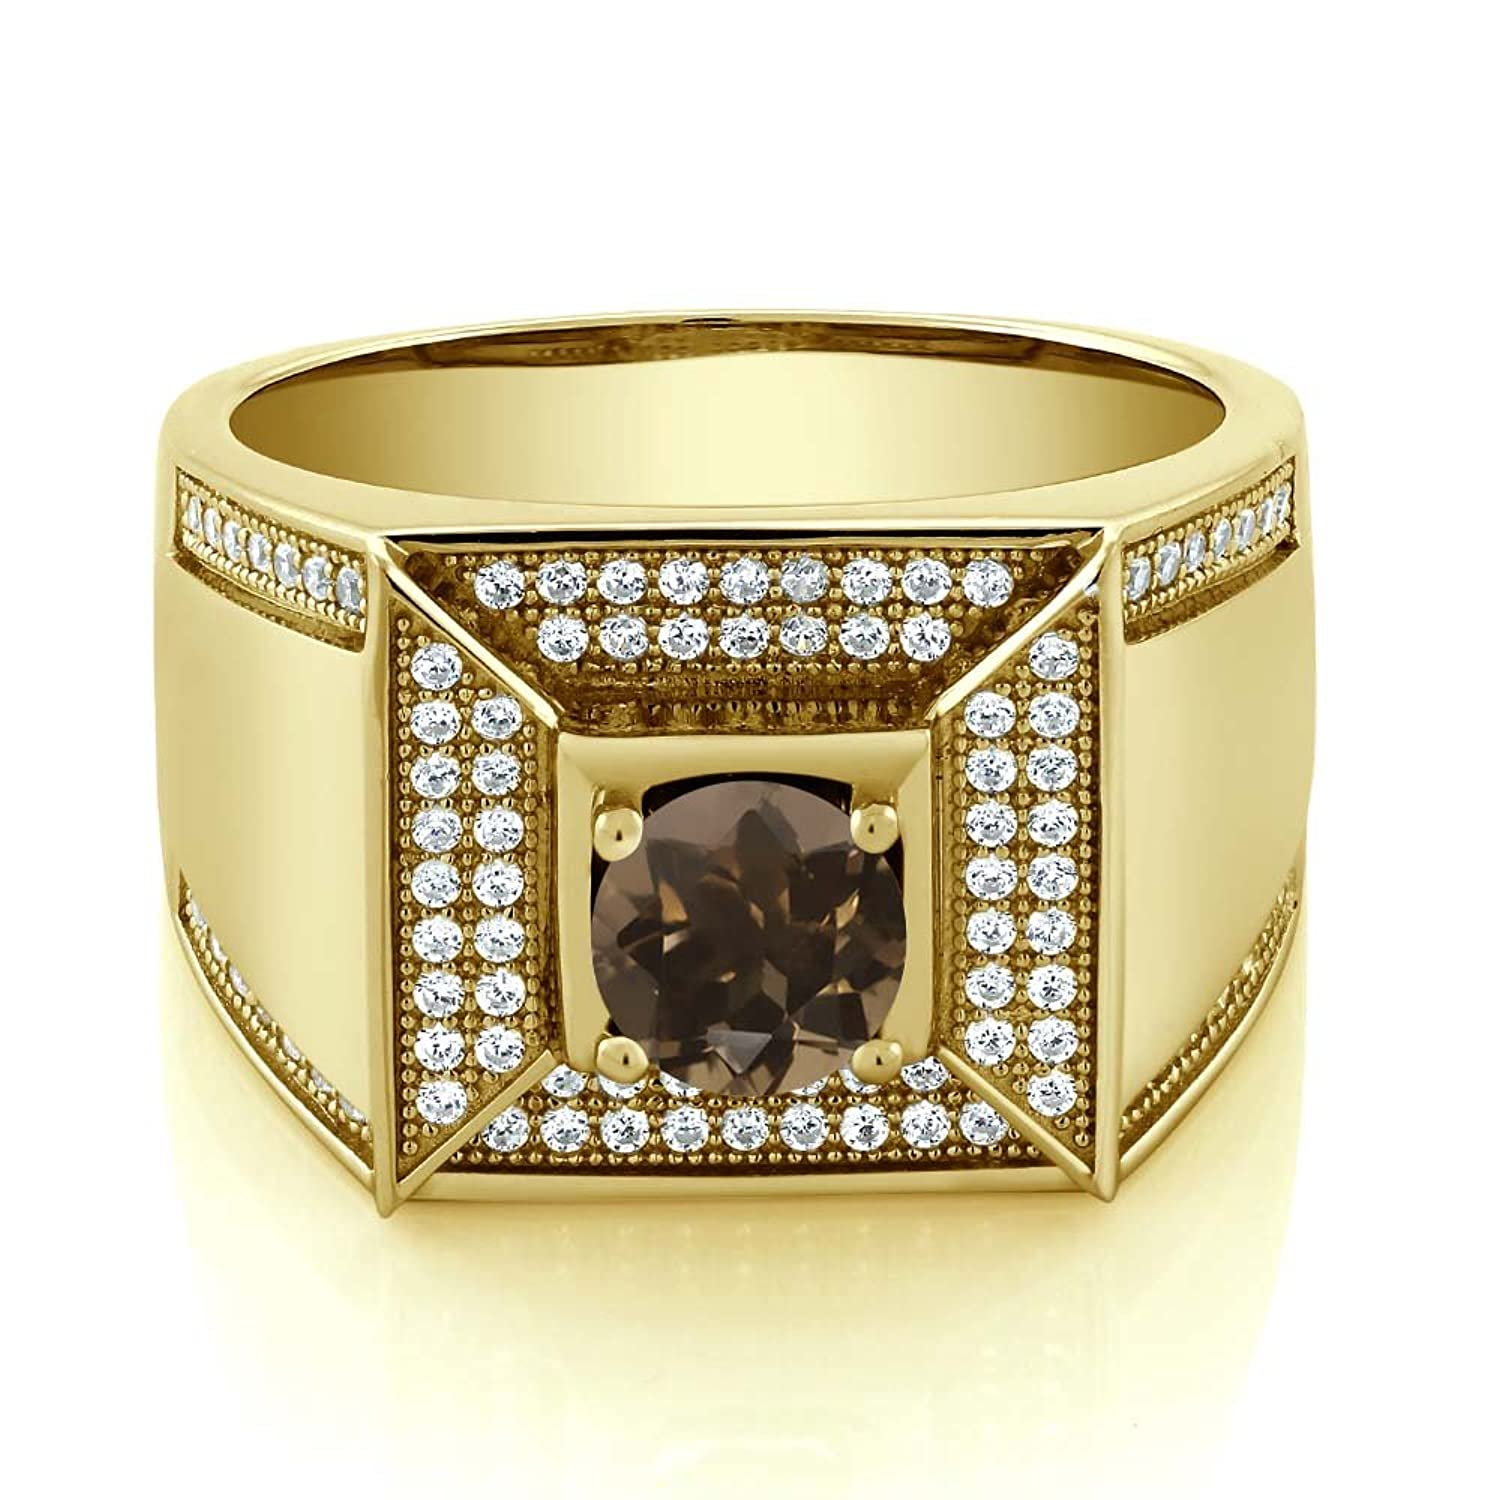 1.90 Ct Round Brown Smoky Quartz 18K Yellow Gold Plated Silver Men's Ring